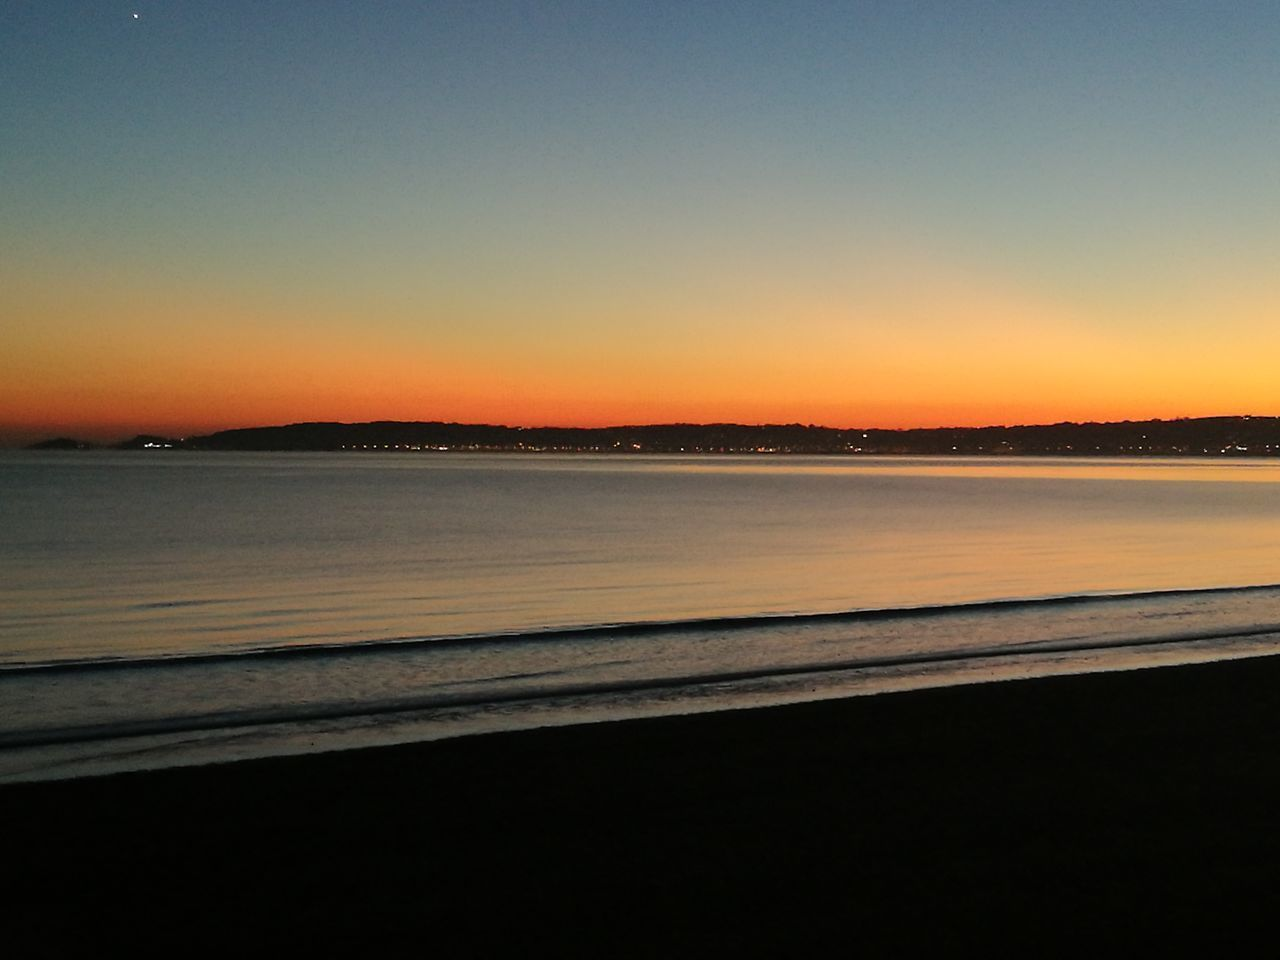 sunset, water, nature, sea, beauty in nature, scenics, sky, tranquil scene, beach, outdoors, horizon over water, no people, tranquility, clear sky, day